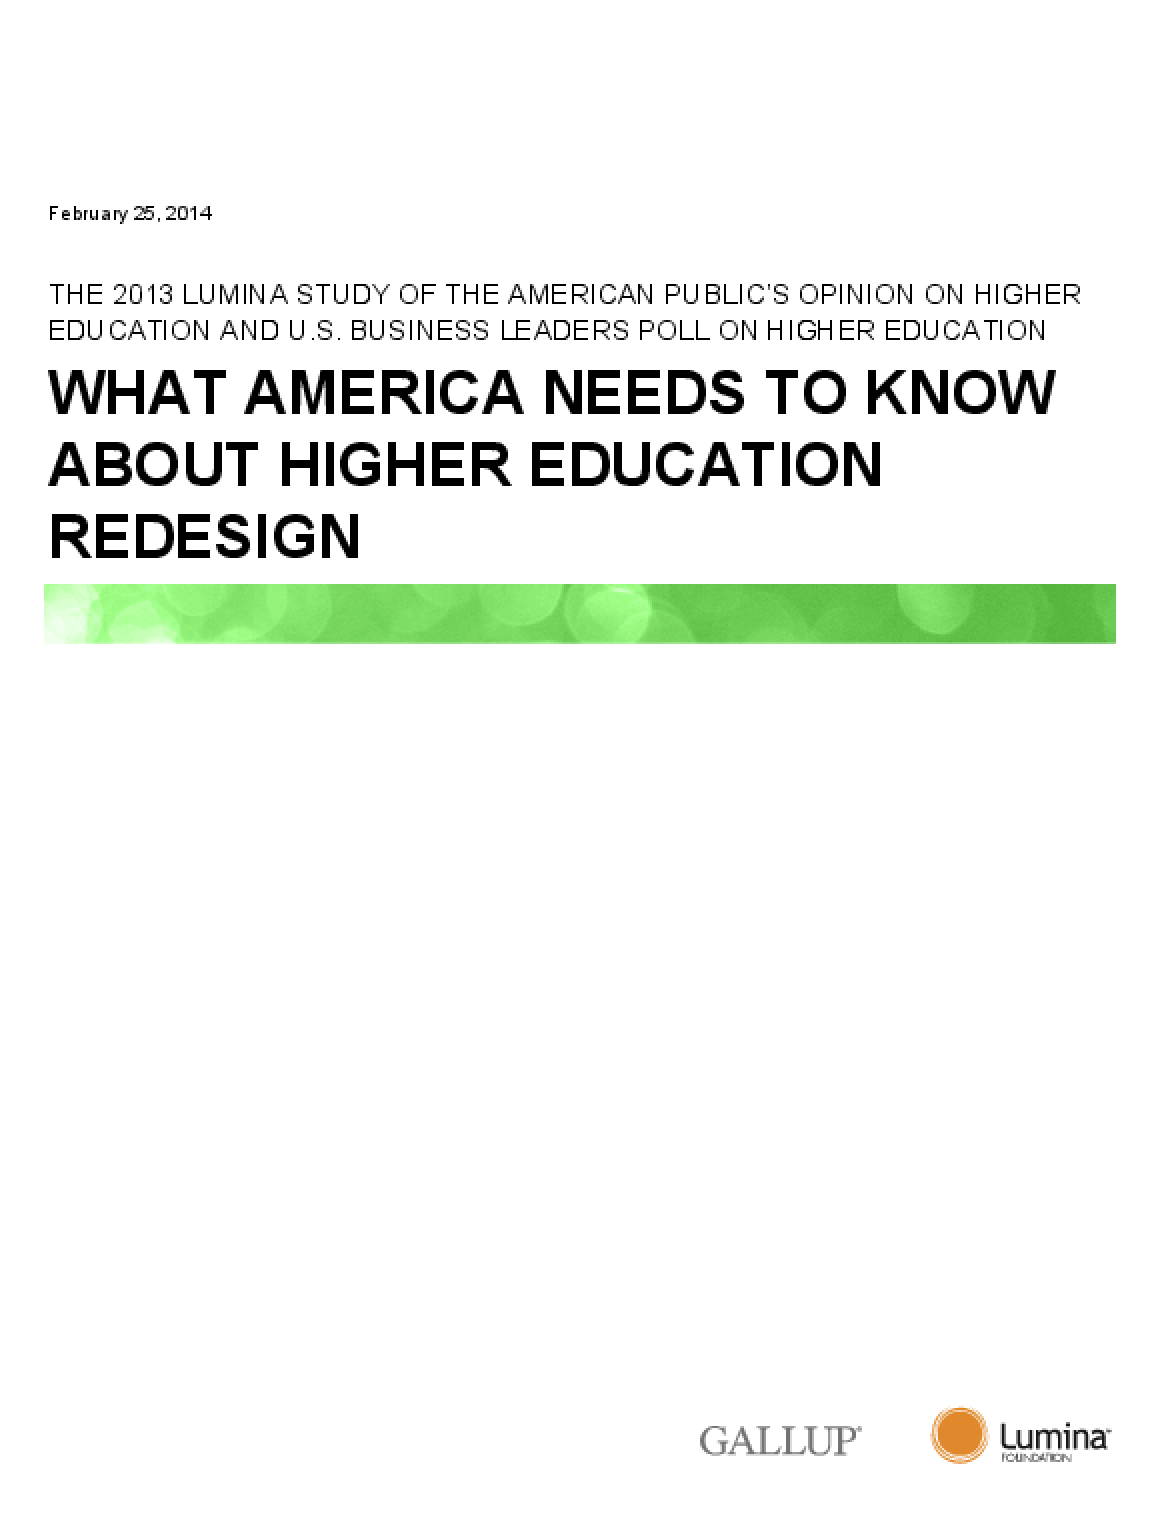 What America Needs to Know About Higher Education Redesign